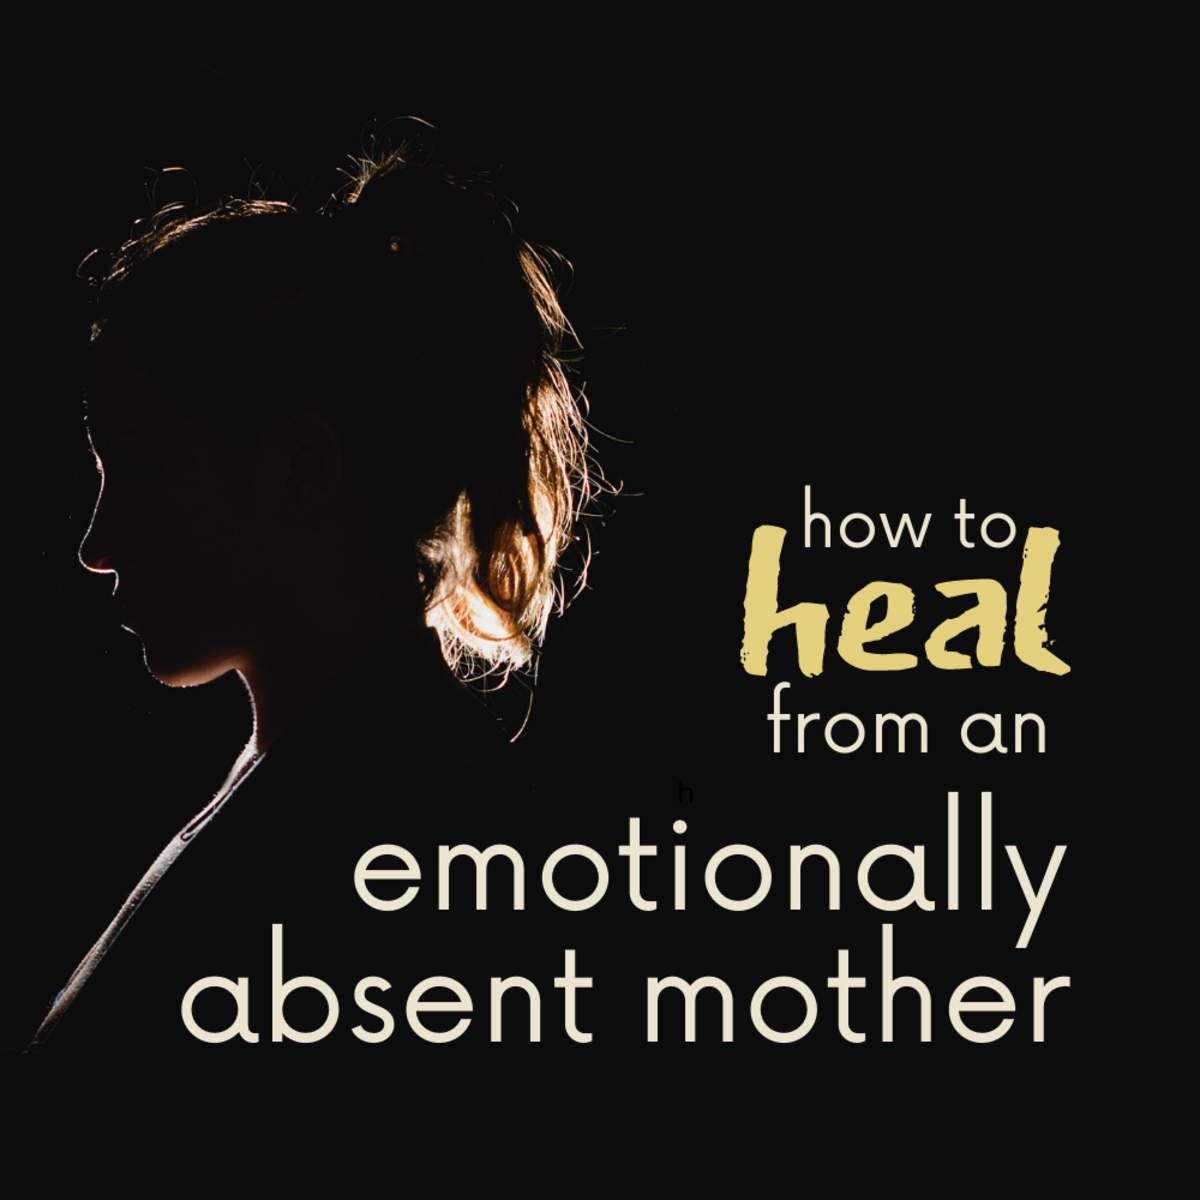 Once a daughter realizes that her mother was emotionally disconnected, she can begin the healing process.